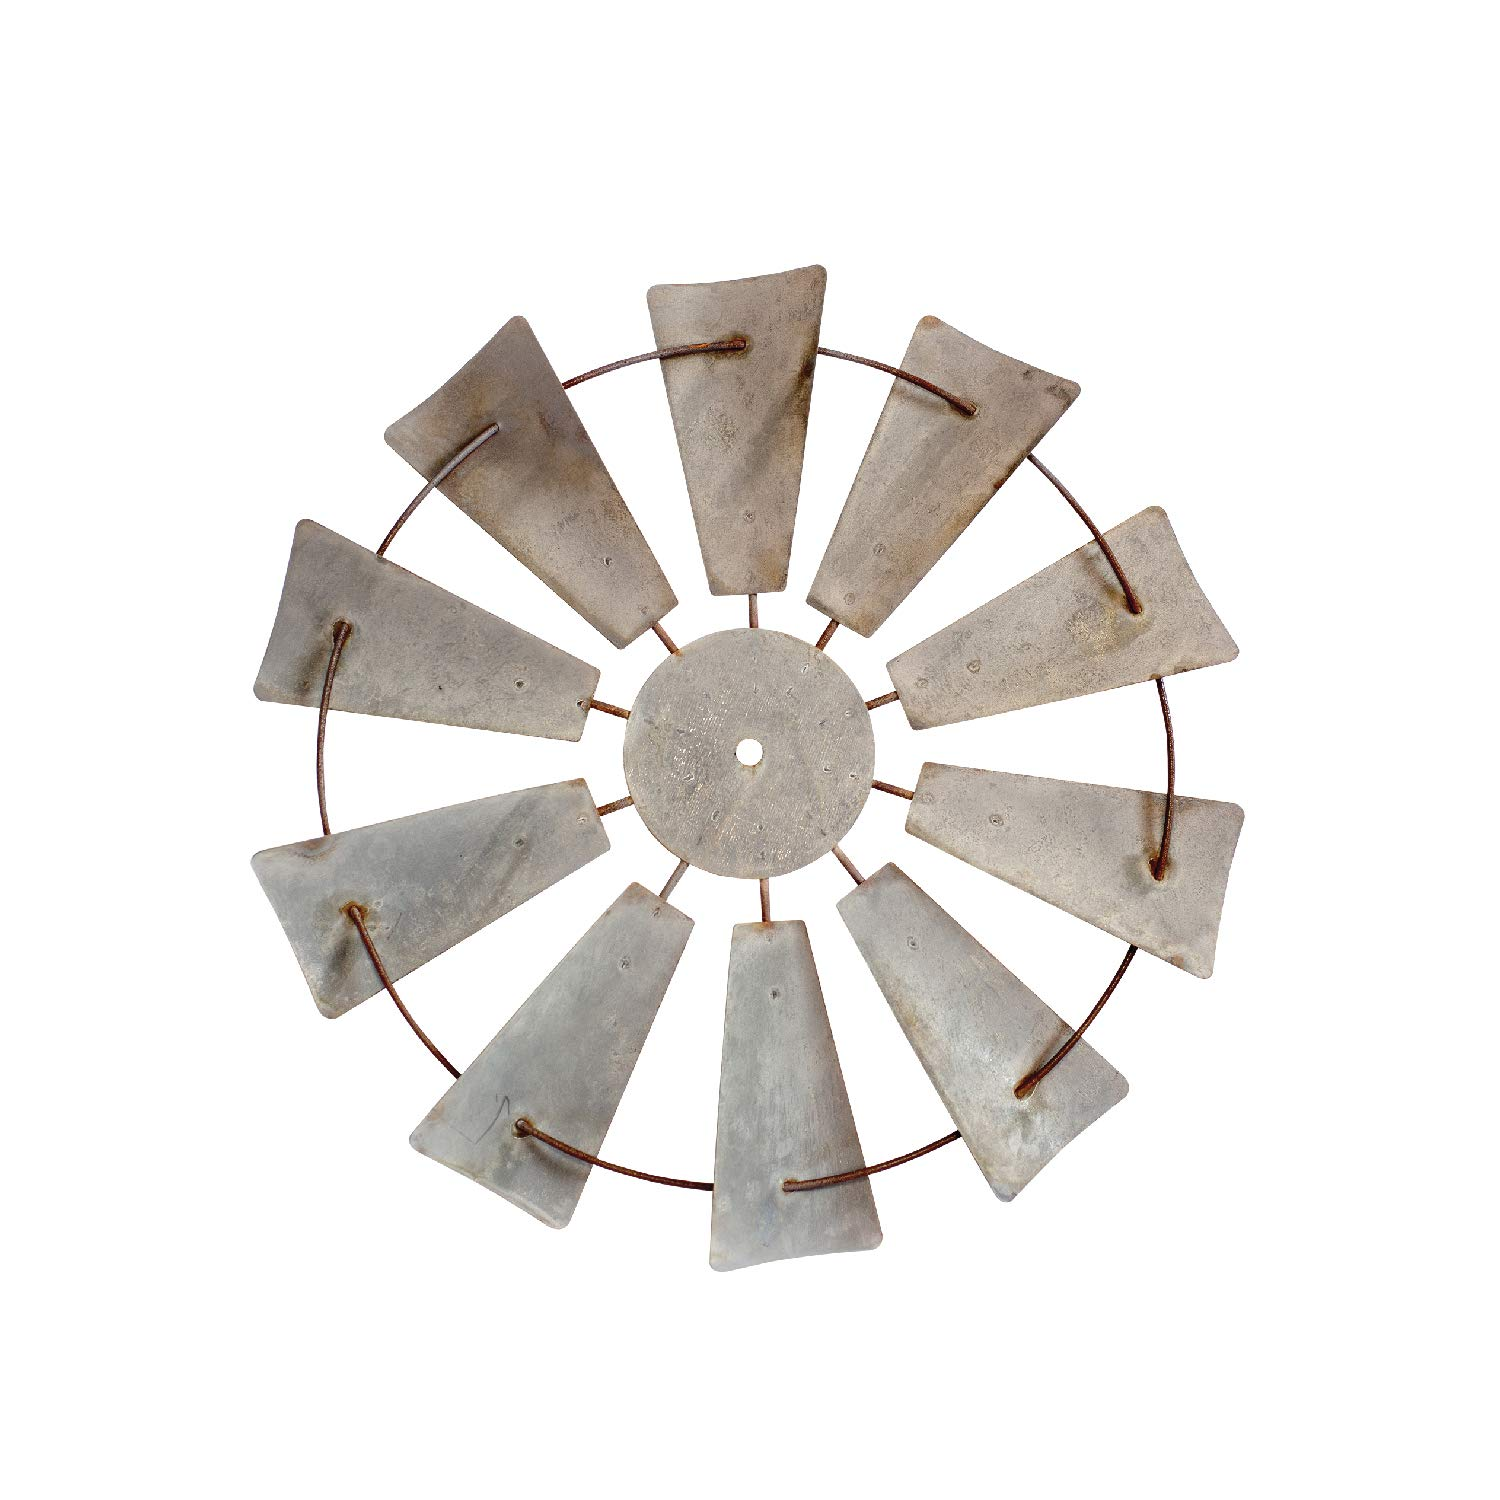 "RUSTIC FARMHOUSE WINDMILL WALL DECOR -15"" Galvanized round metal country magnolia farm wind mill home decor. Windmills design accent in Joanna Gaines fixer upper style for house walls kitchen barn art"